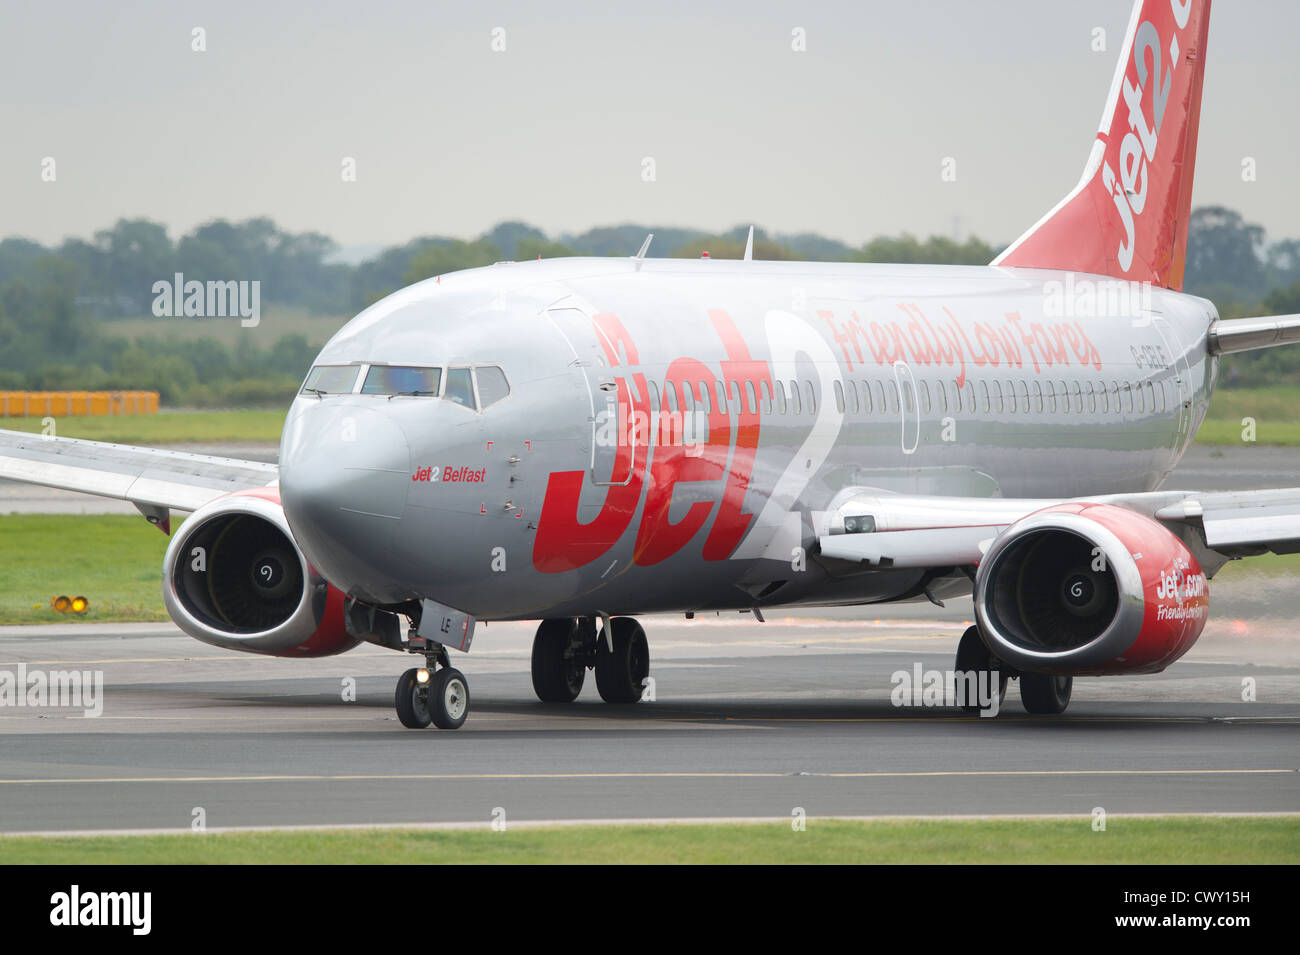 A Jet2 Boeing 737 taxiing on the runway of Manchester International Airport (Editorial use only) - Stock Image